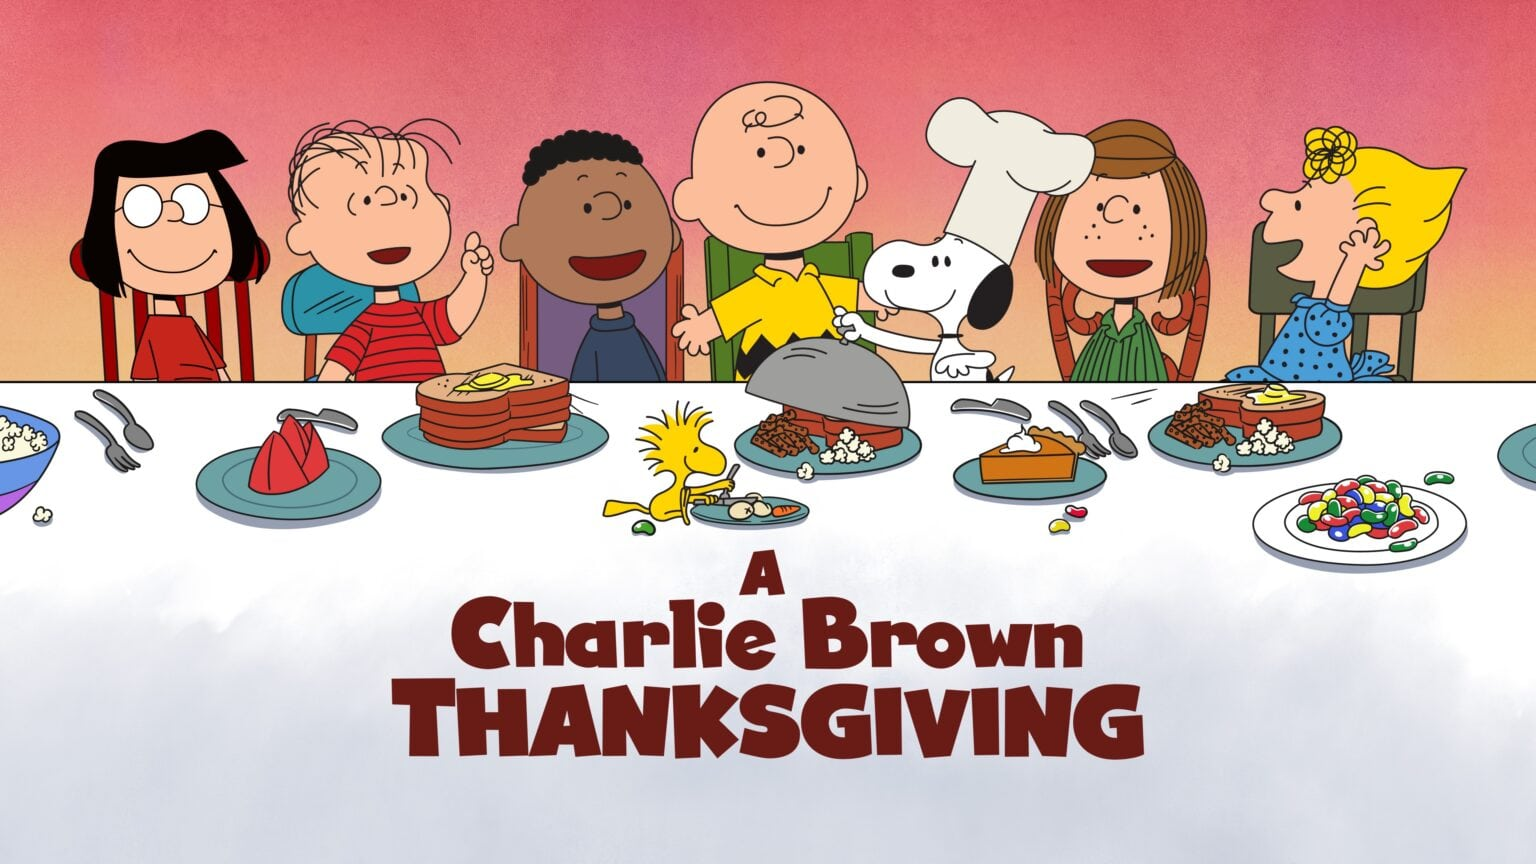 Apple will let PBS broadcast 'A Charlie Brown Thanksgiving' for everyone to see.